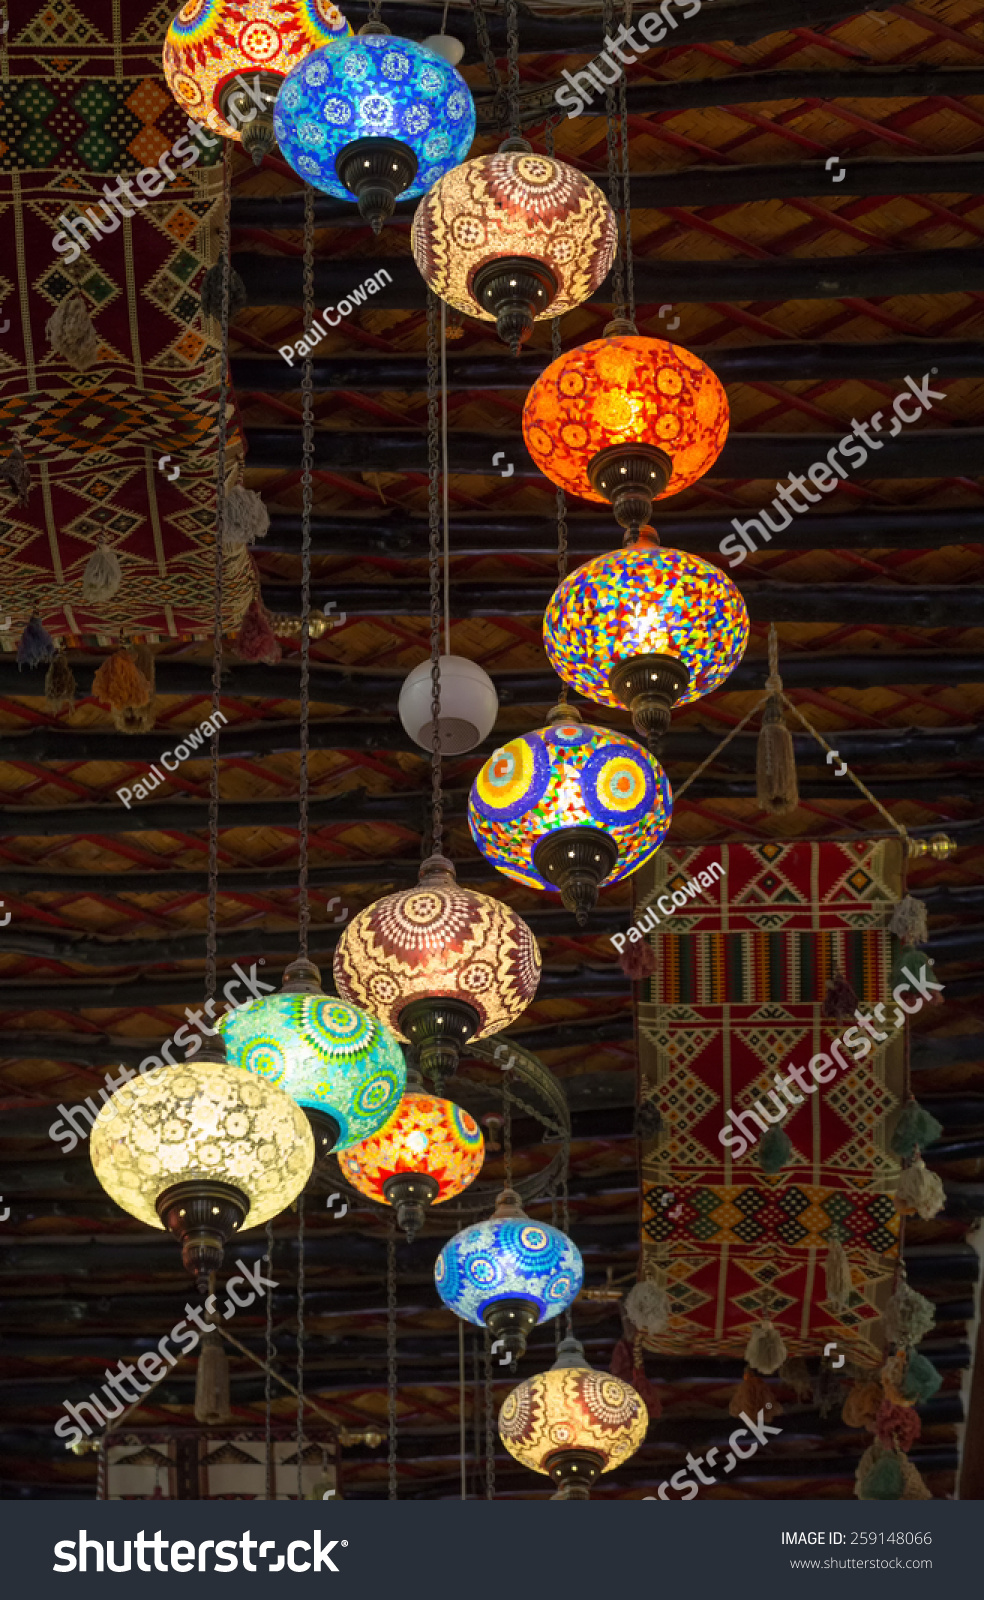 Doha qatar march 8 2015 lanterns strung from the ceiling illuminate the